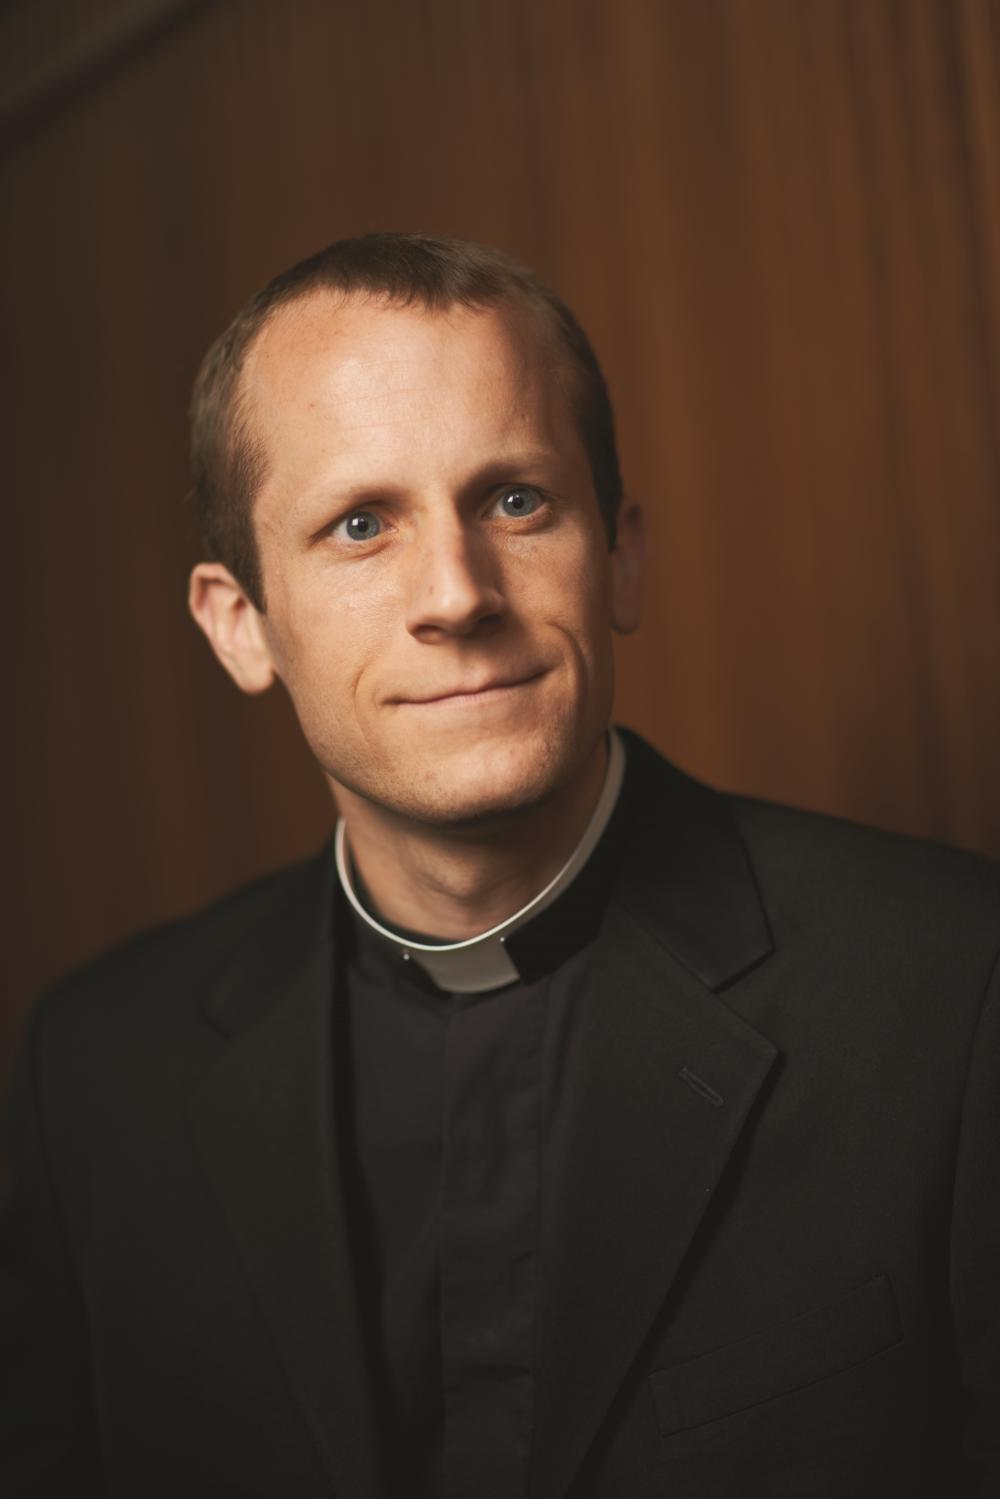 Meet Father John Whitlock, new director of vocations for the Diocese of Lansing